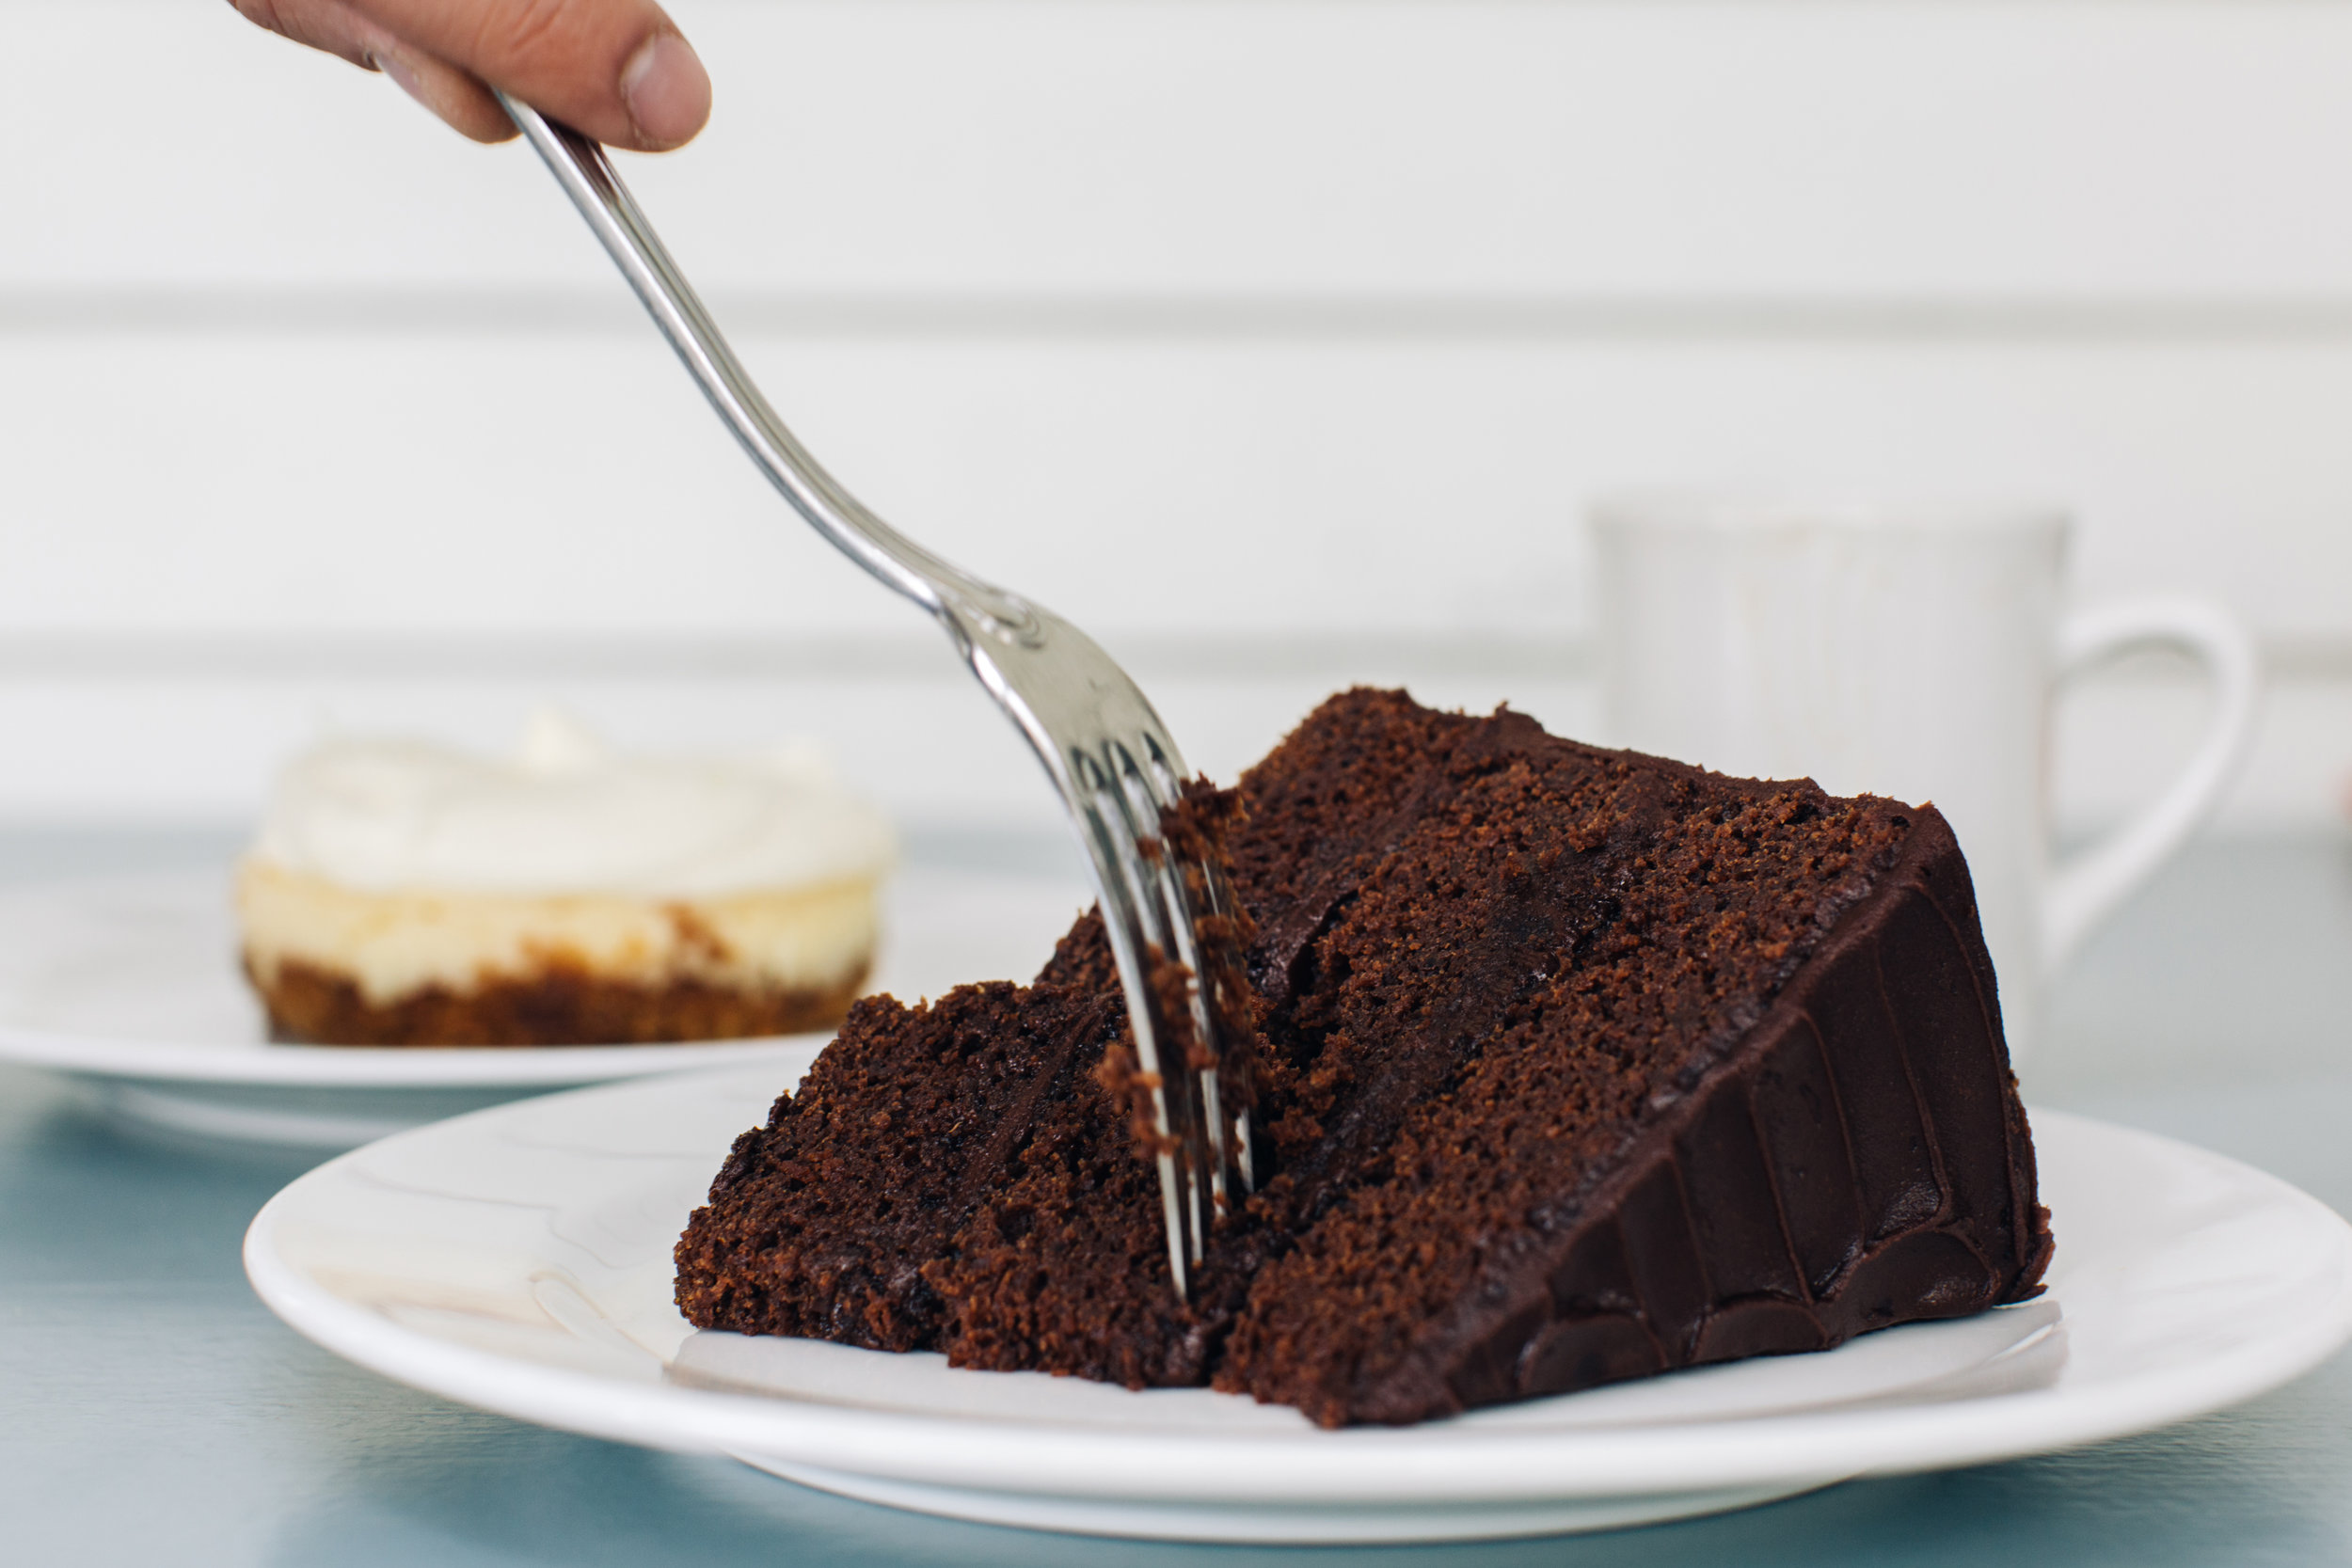 Awesome Chocolate Cake 4.JPG